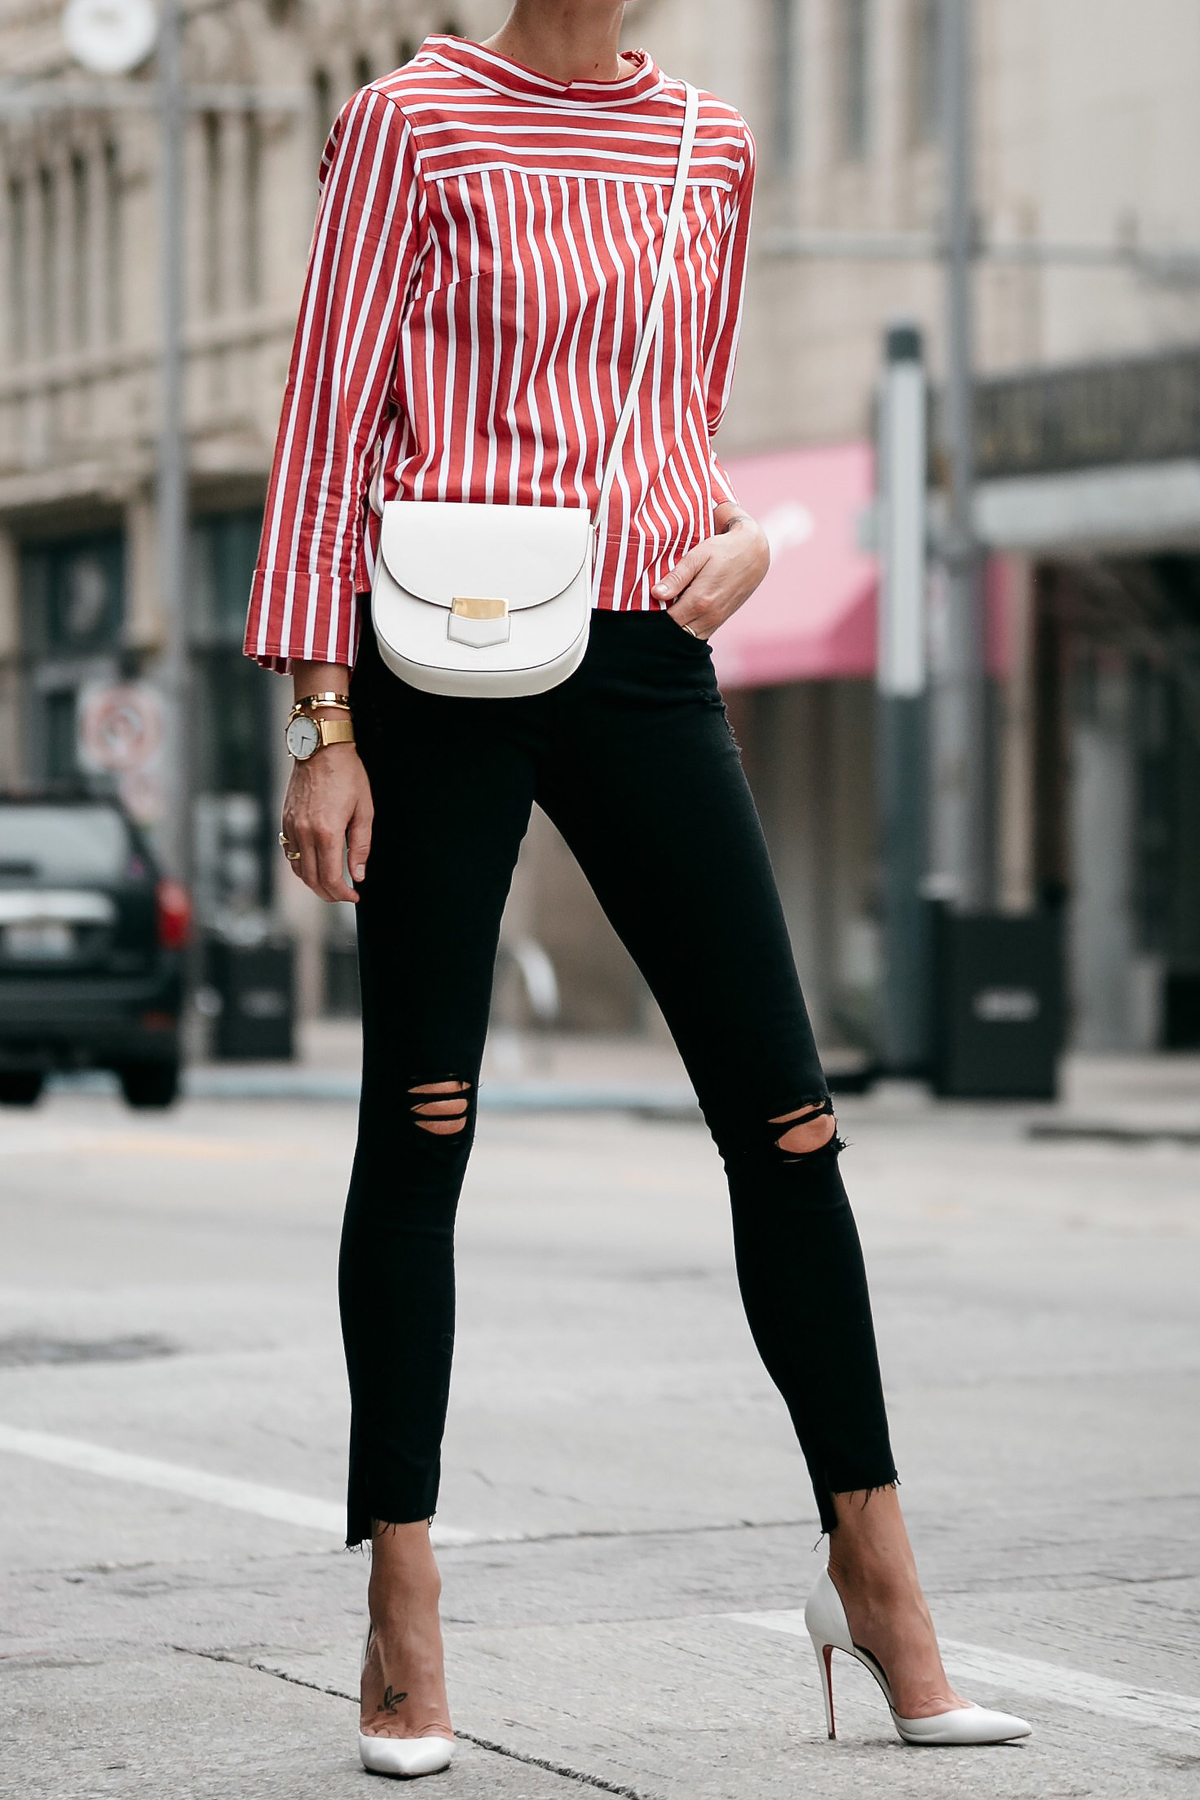 Jcrew Red White Striped Shirt Black Ripped Skinny Jeans Outfit Celine White Trotteur Handbag Christian Louboutin White Pumps Fashion Jackson Dallas Blogger Fashion Blogger Street Style